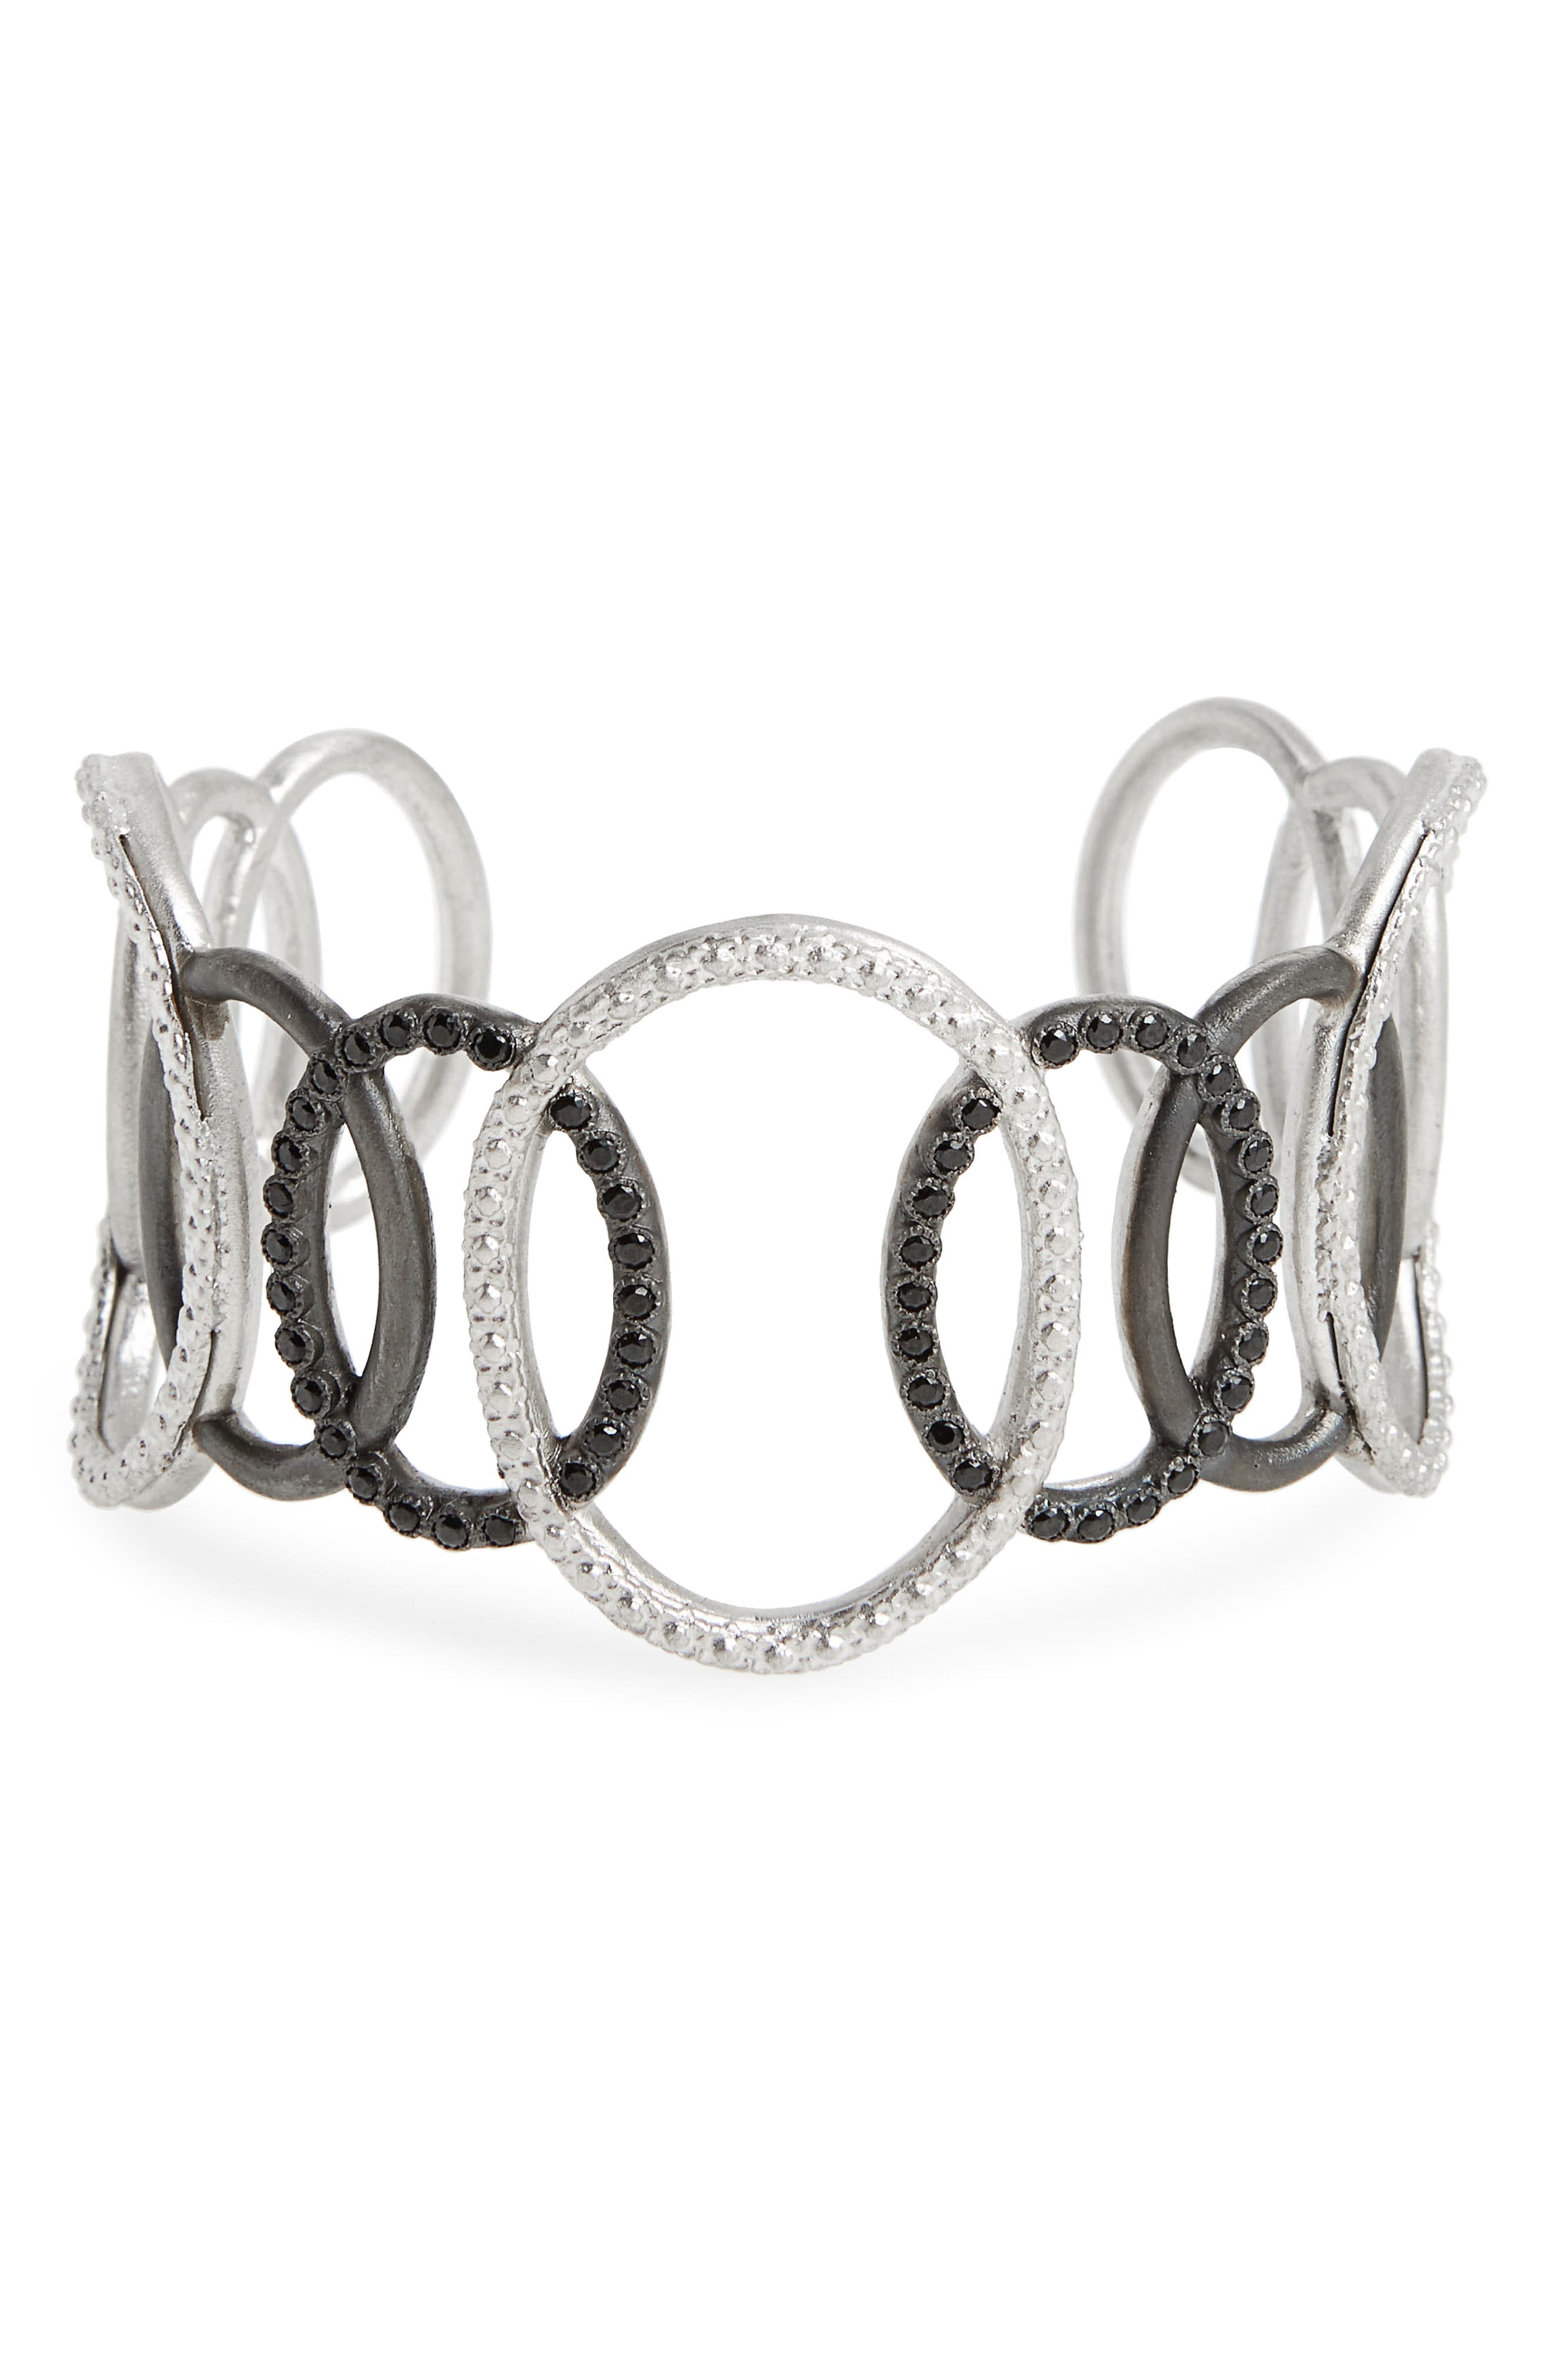 New World Large Open Circle Link Cuff,                         Main,                         color, Silver